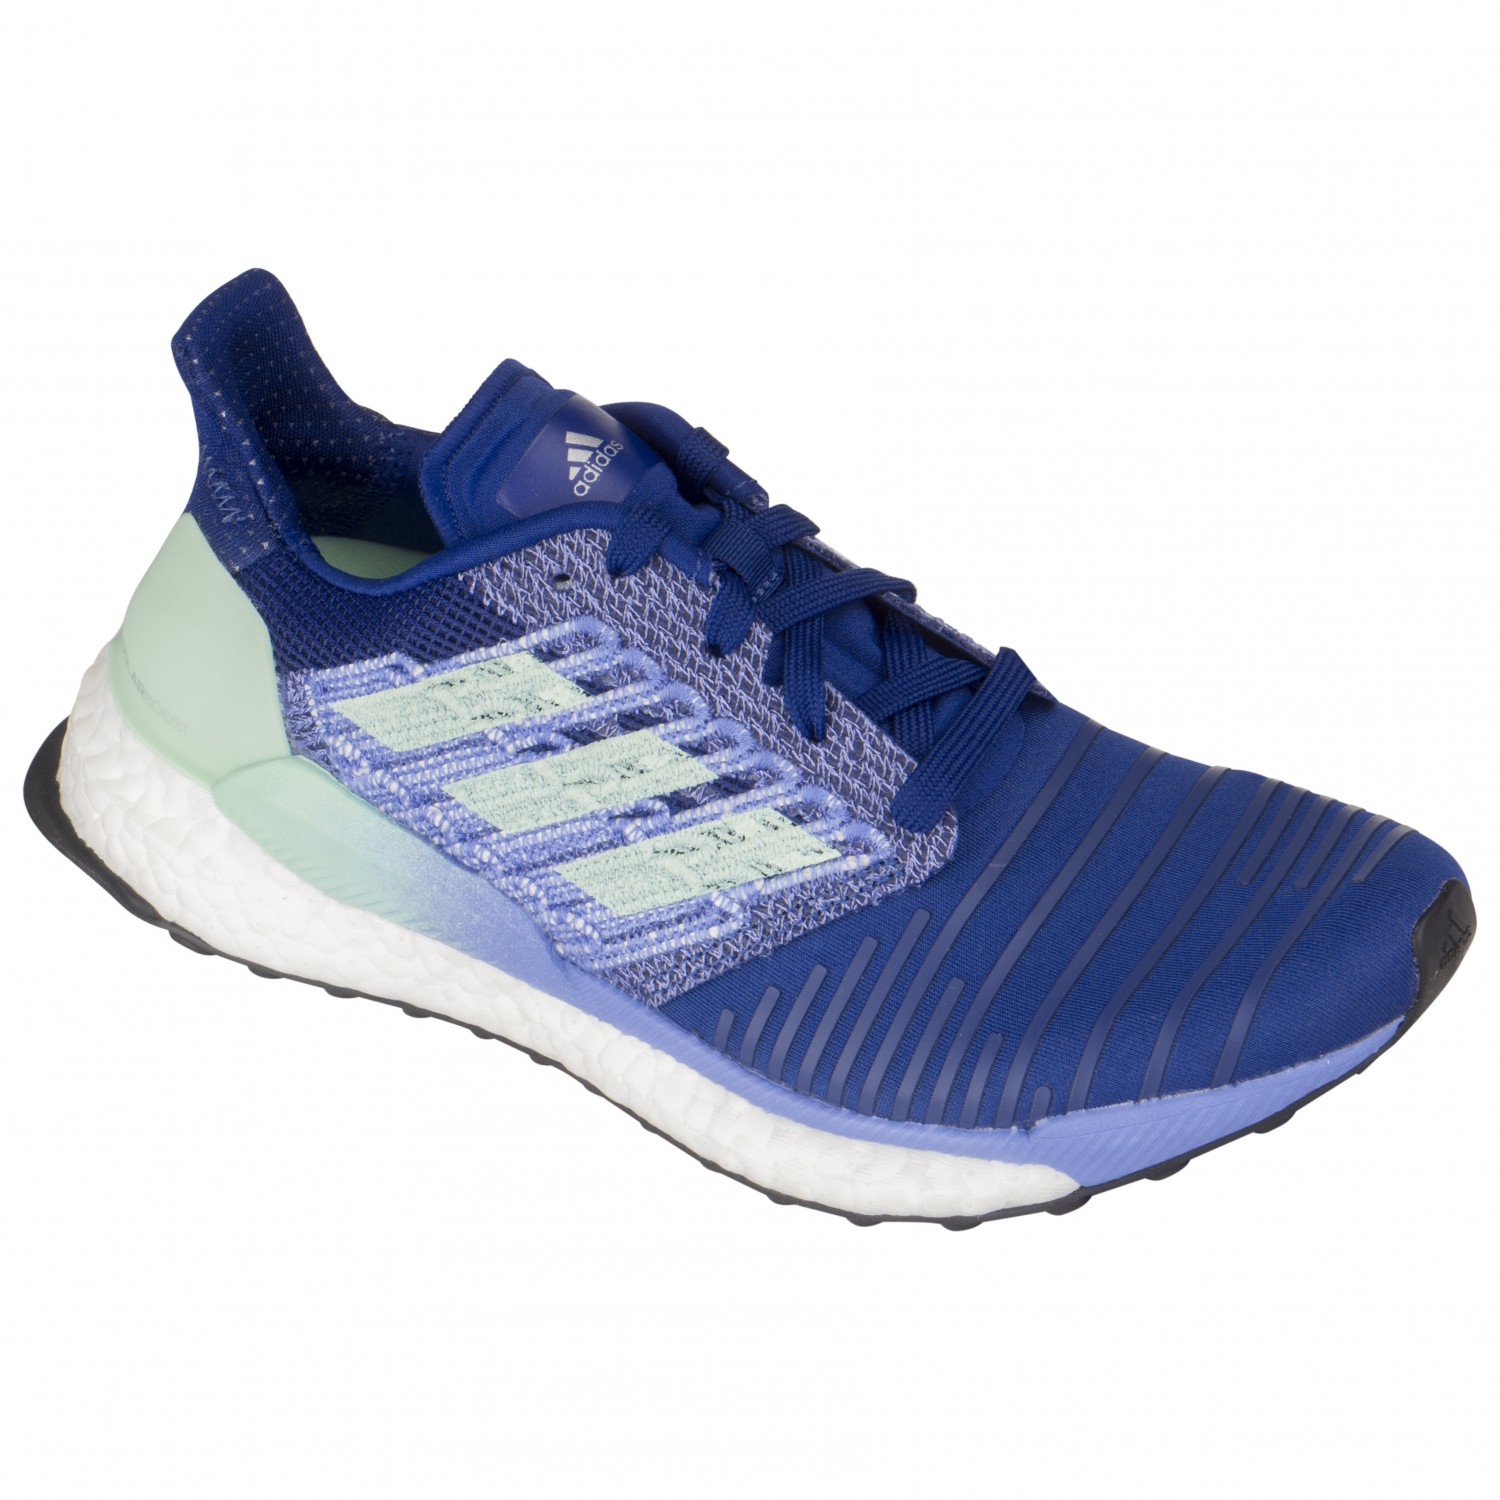 0a7085f5acd49 adidas - Women s Solar Boost - Running shoes